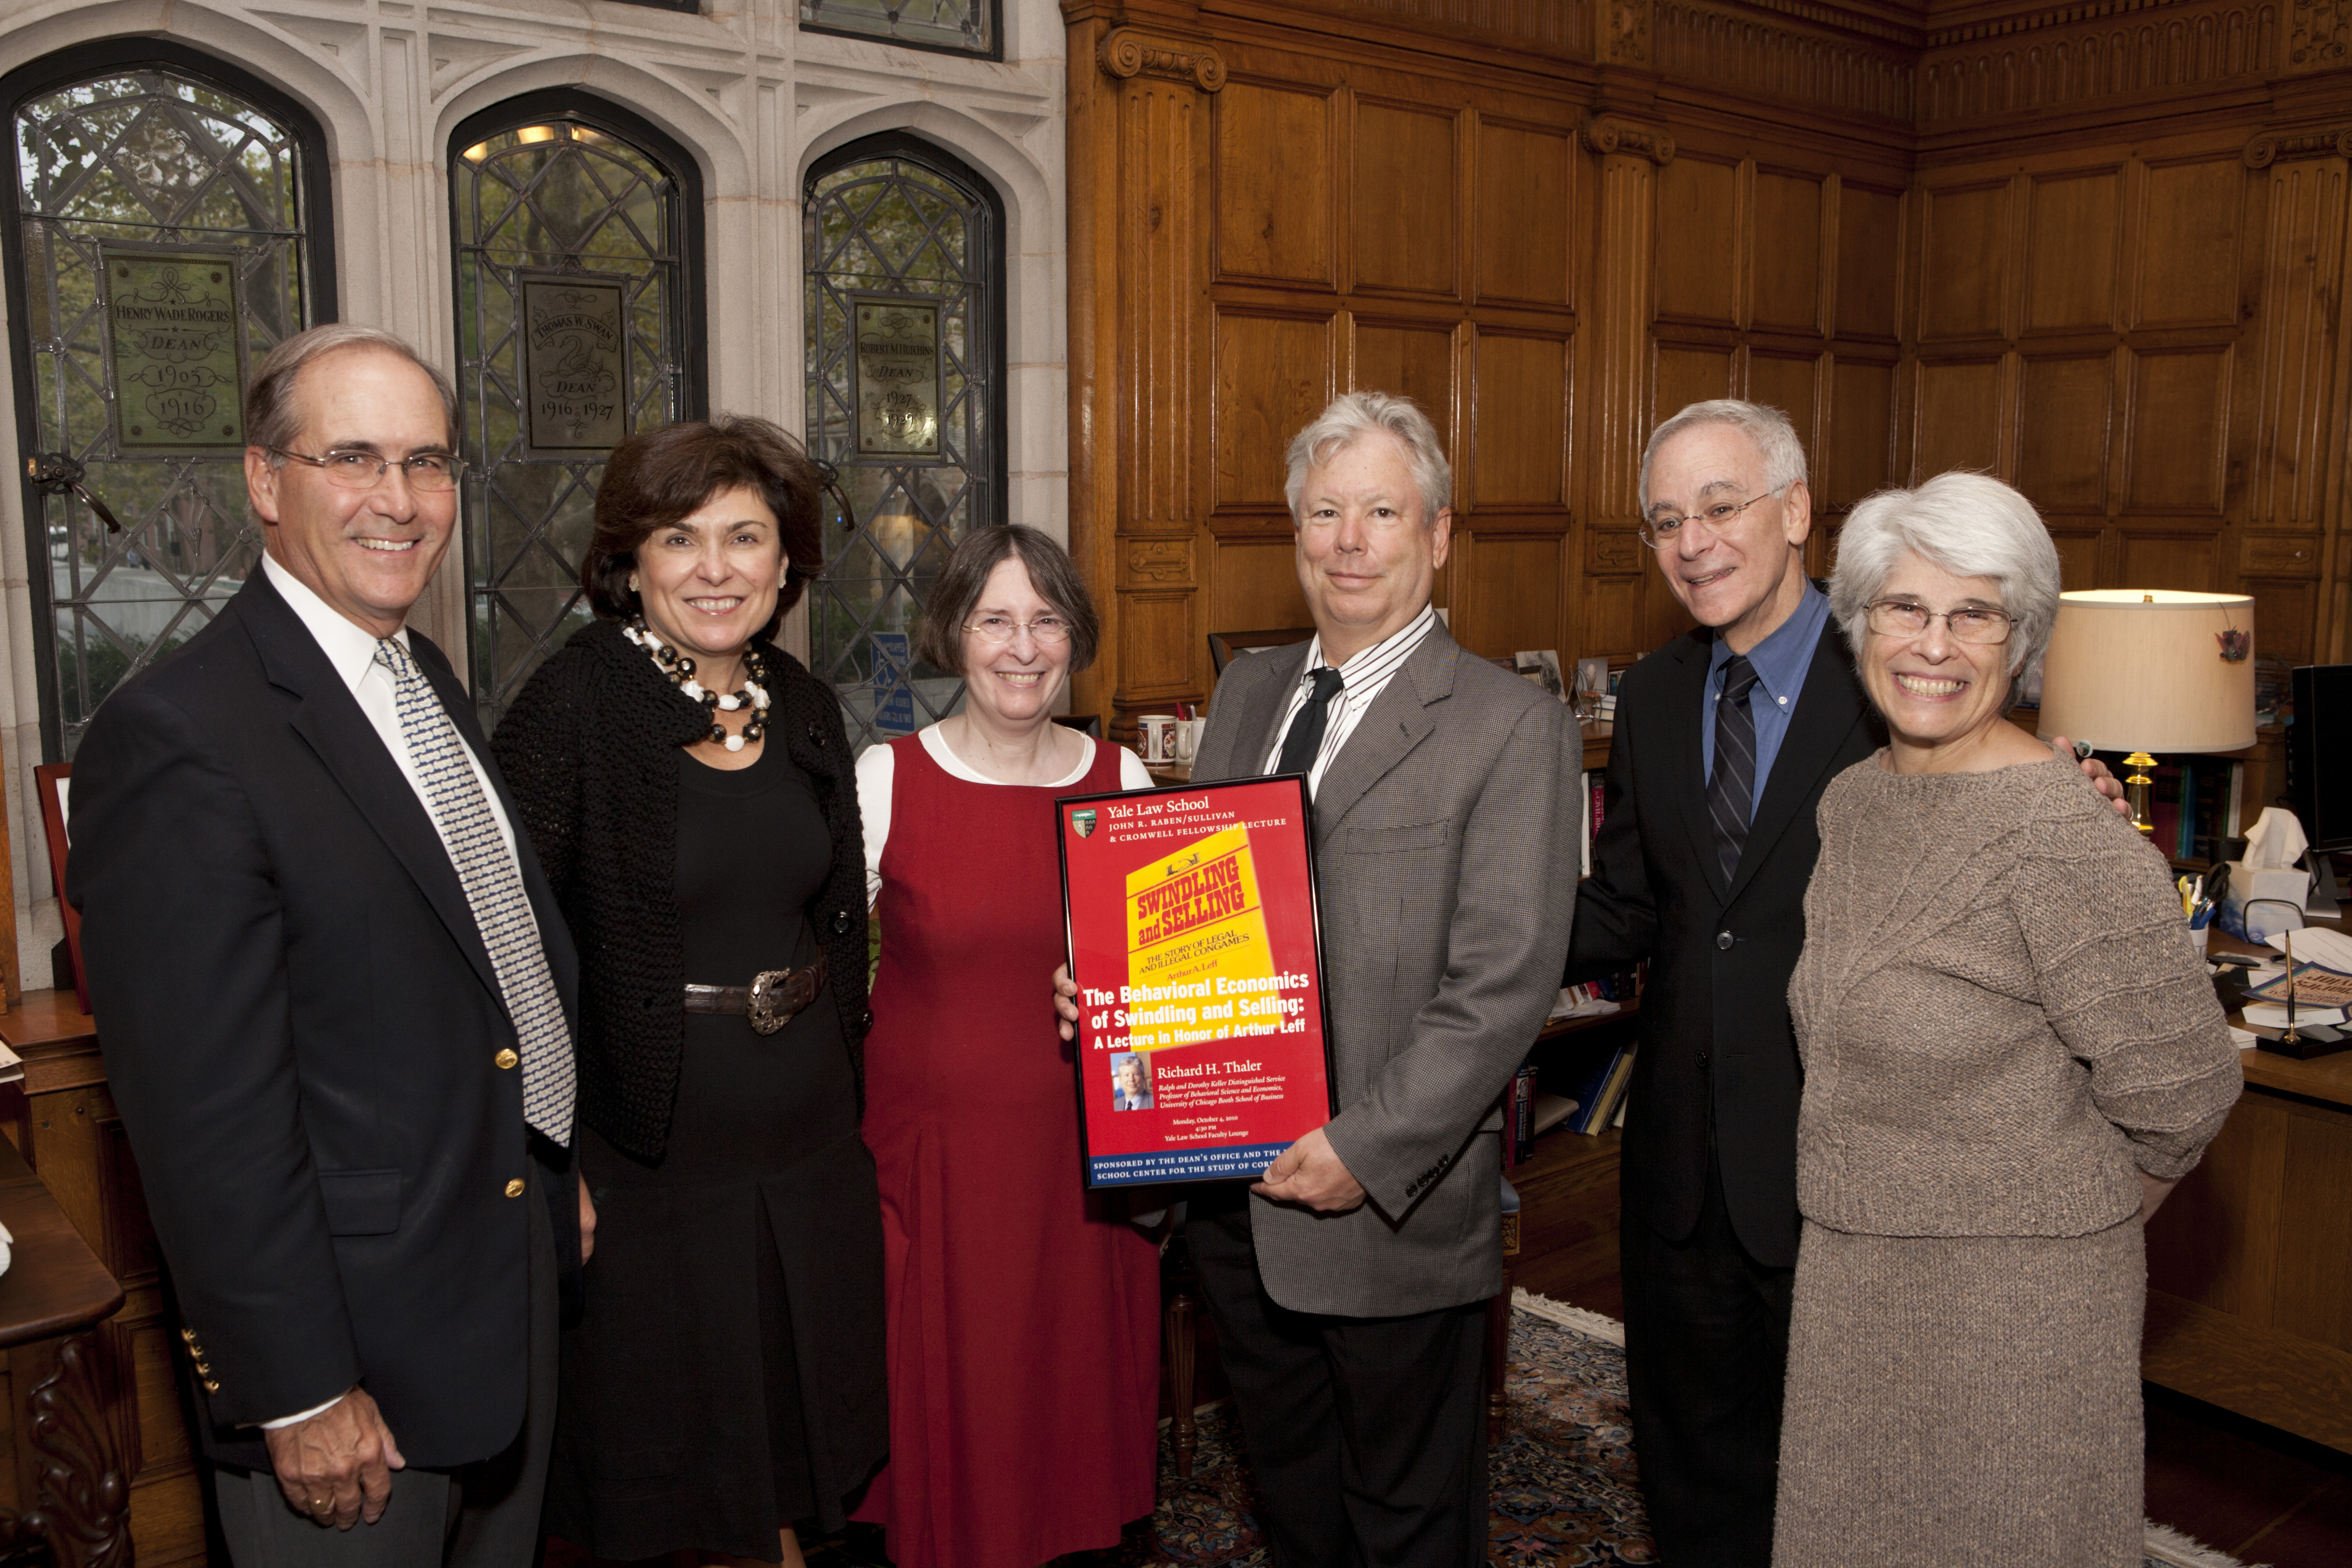 John Raben, Marianna Ponns Cohen, YLS Prof. and Center Dir. Roberta Romano '80, U. of Chicago Booth Prof. Richard H. Thaler, YLS Dean Robert Post '77, and Susan Leff